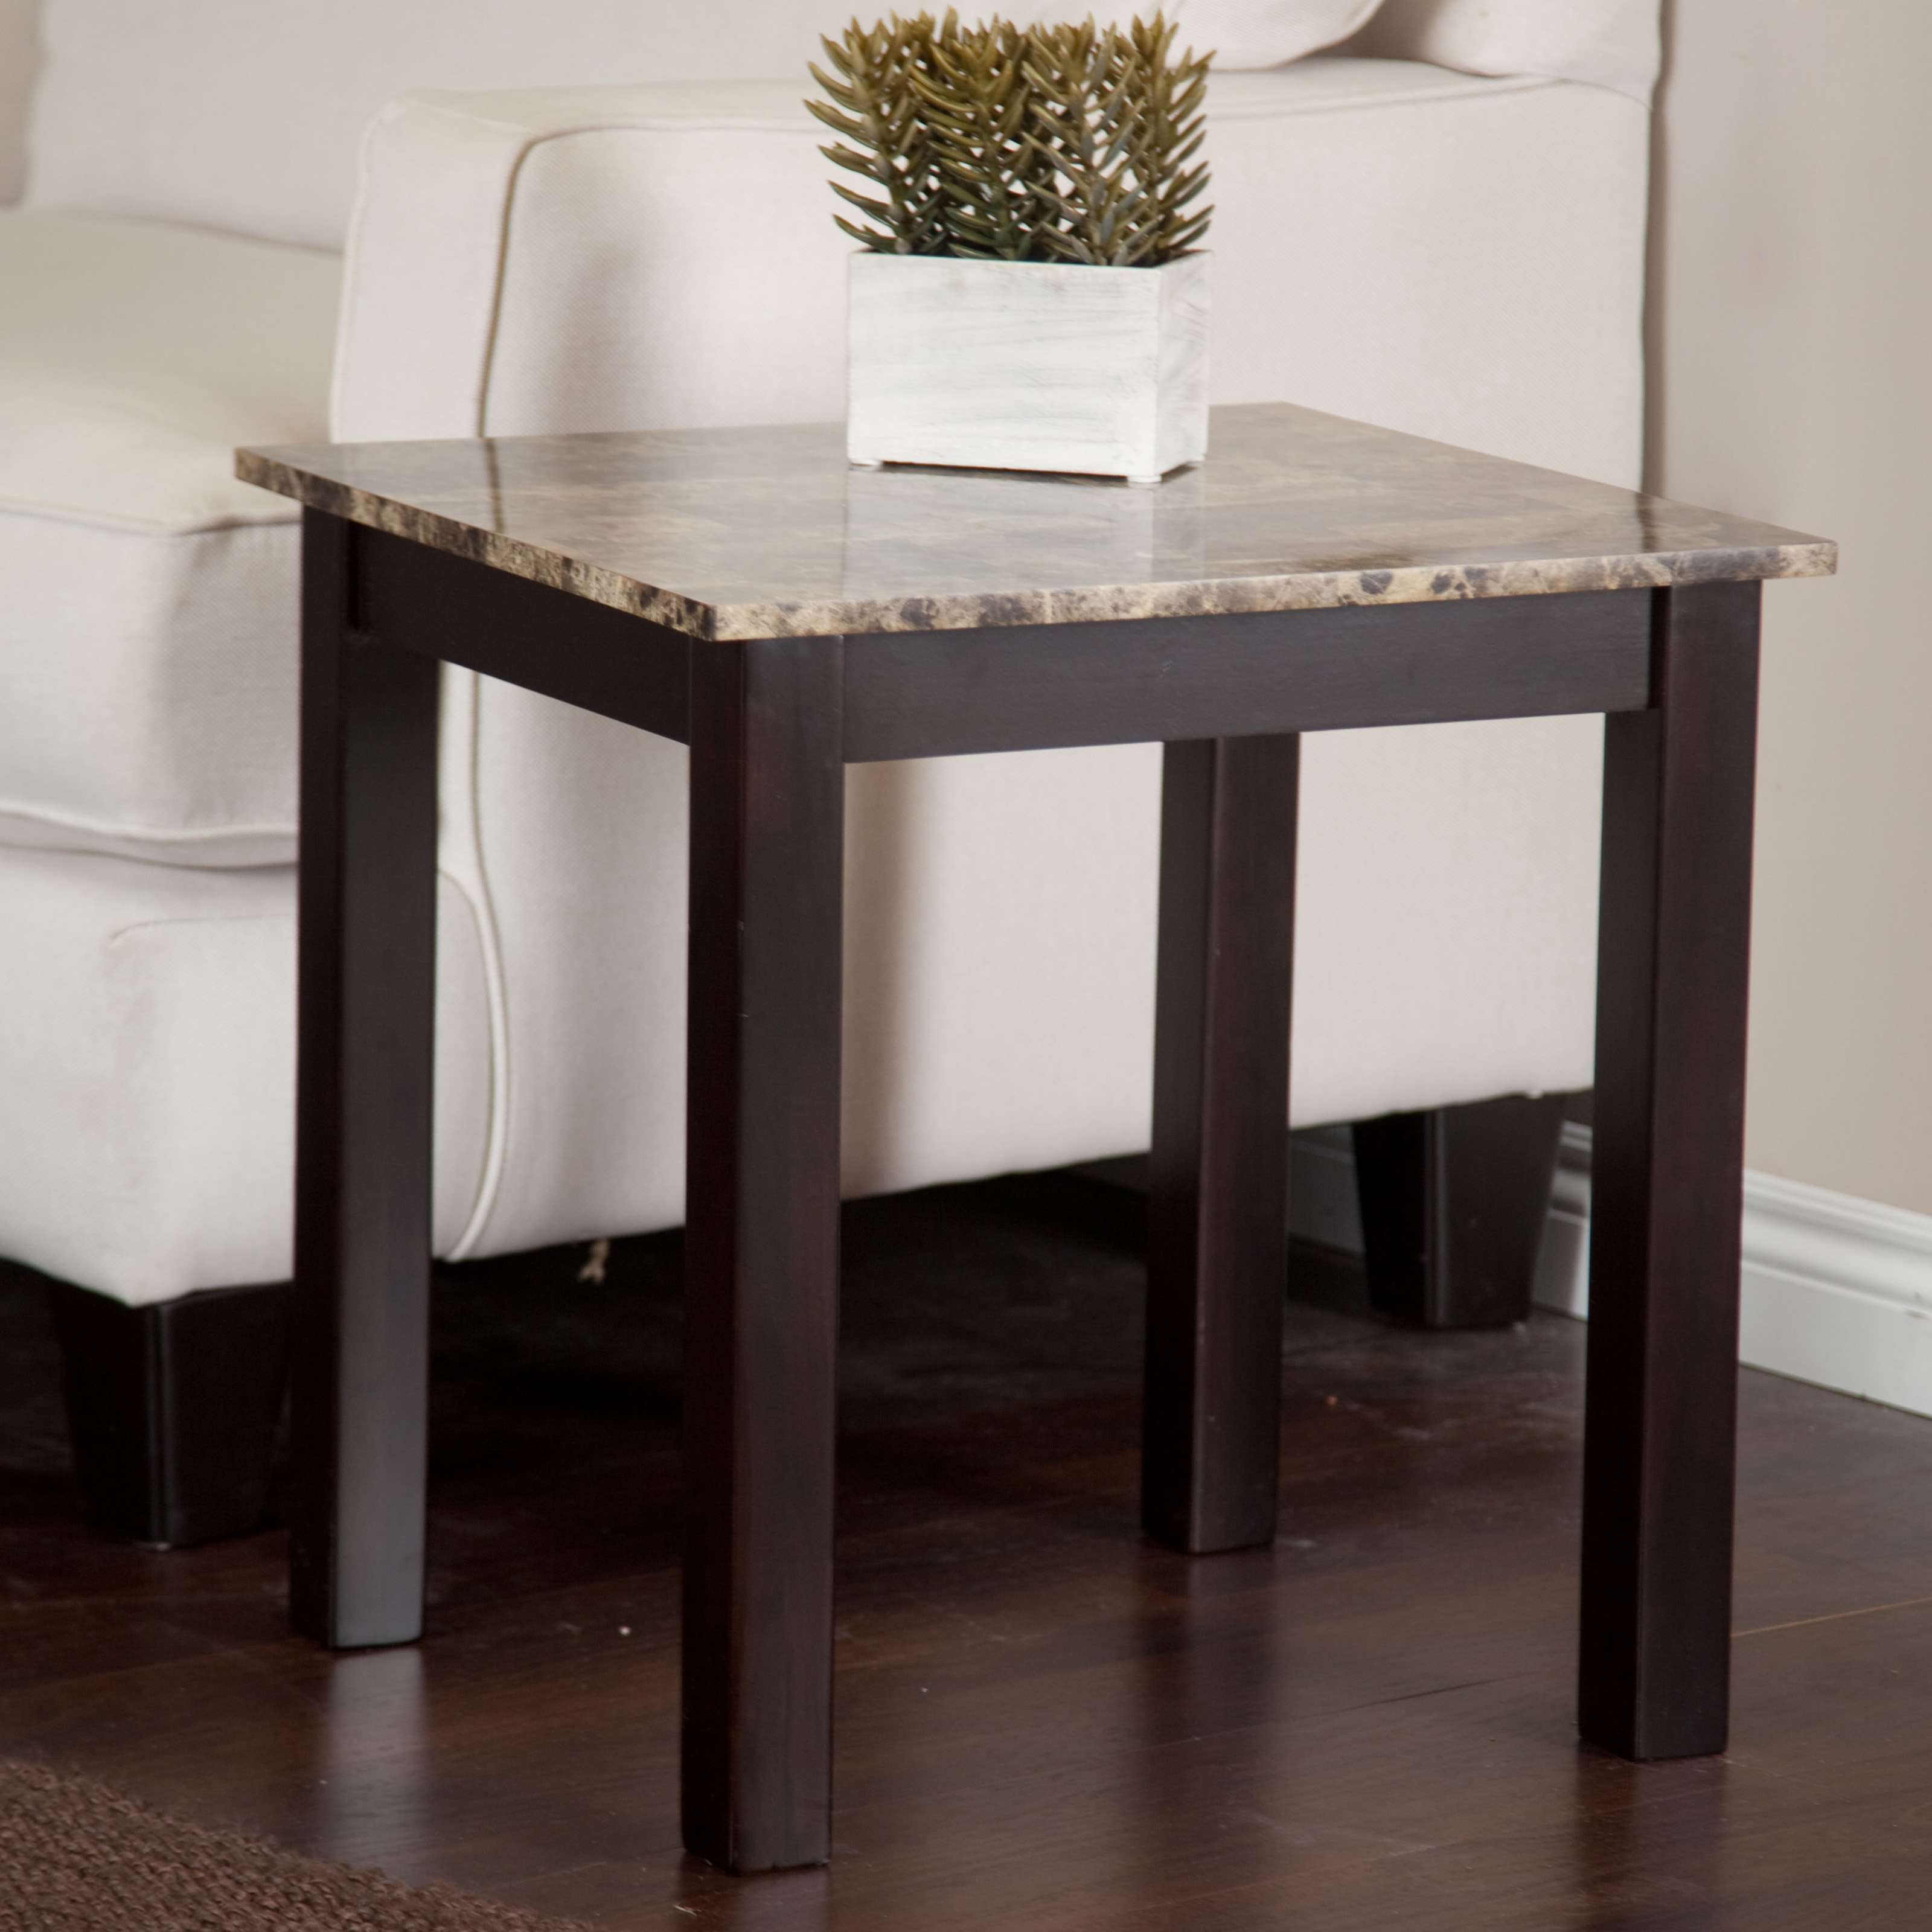 Ordinaire Palazzo Faux Marble End Table